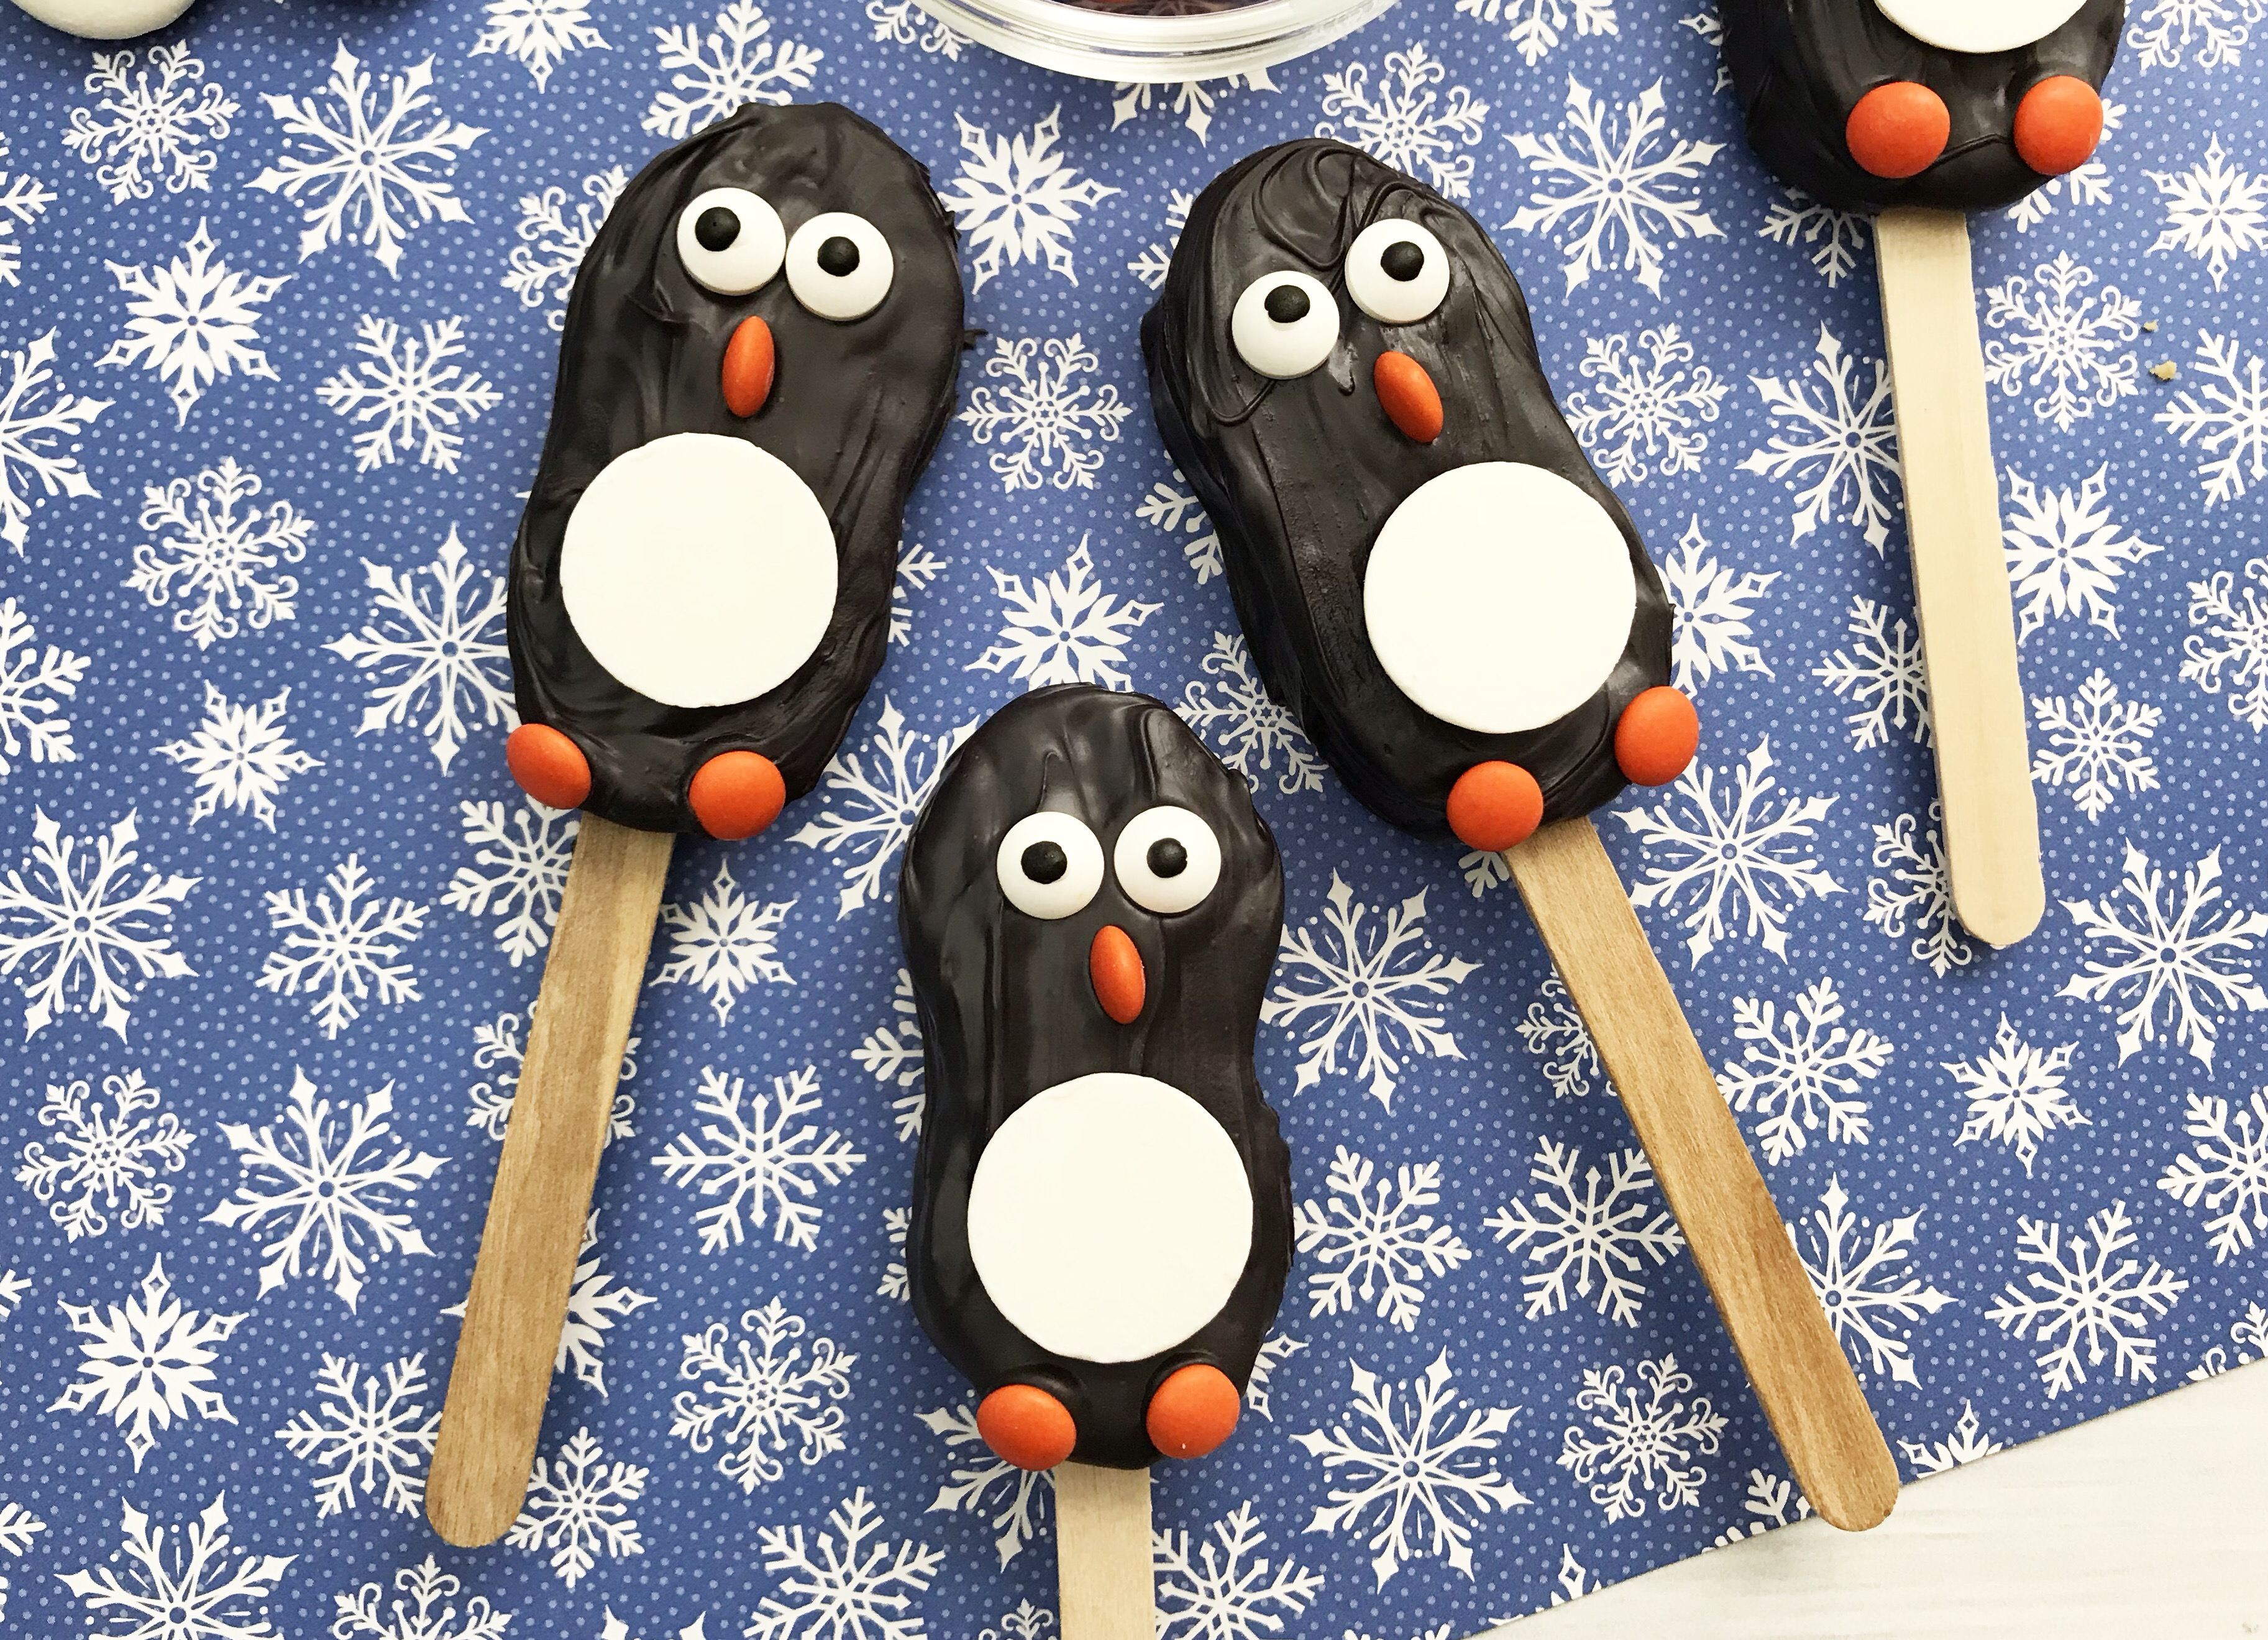 Penguin Nutter Butter Cookies on Blue Background with White Snowflakes